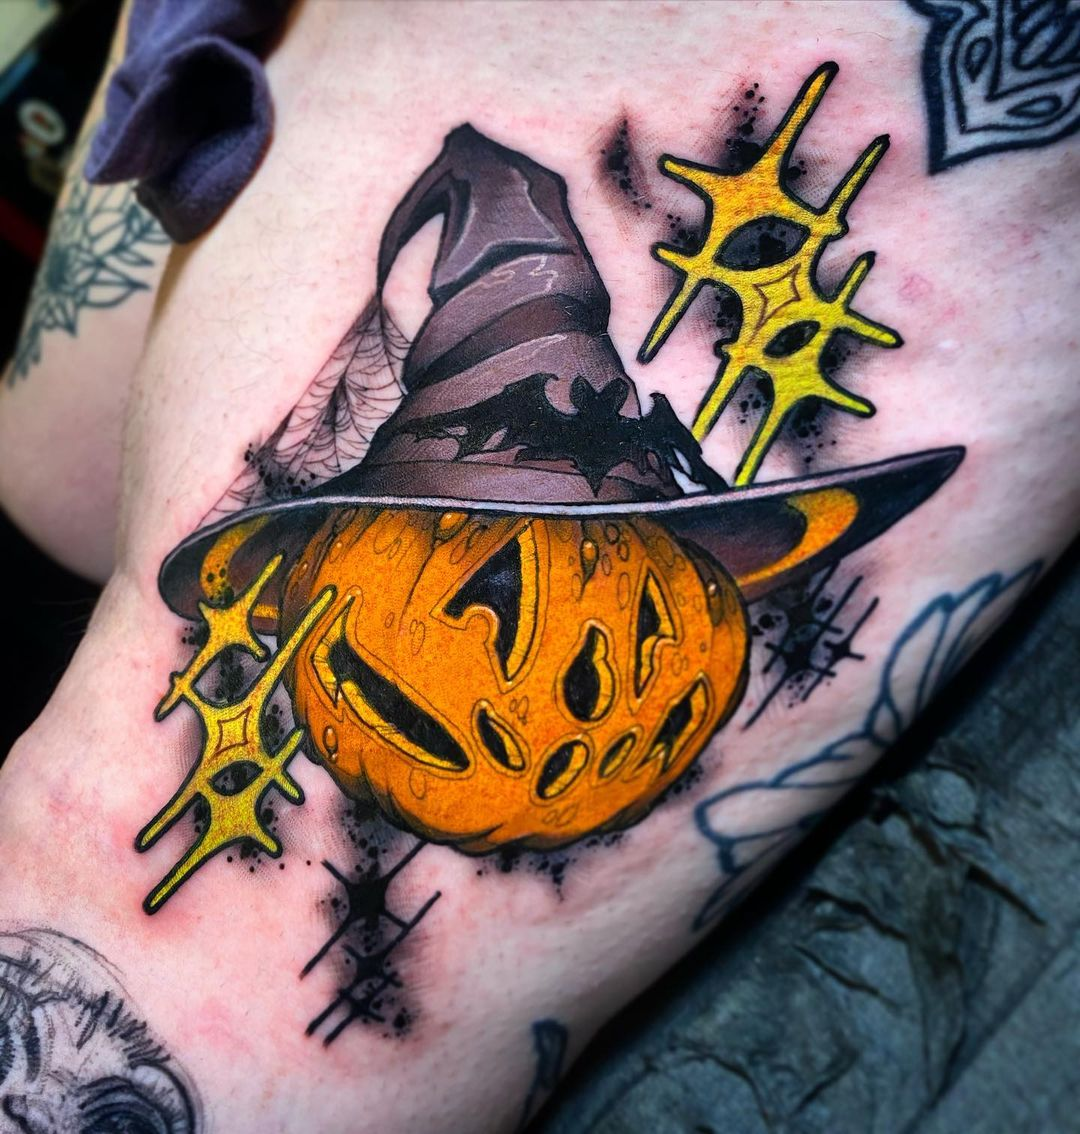 Halloween is National Pumpkin Day. This feels appropriate Tattoo